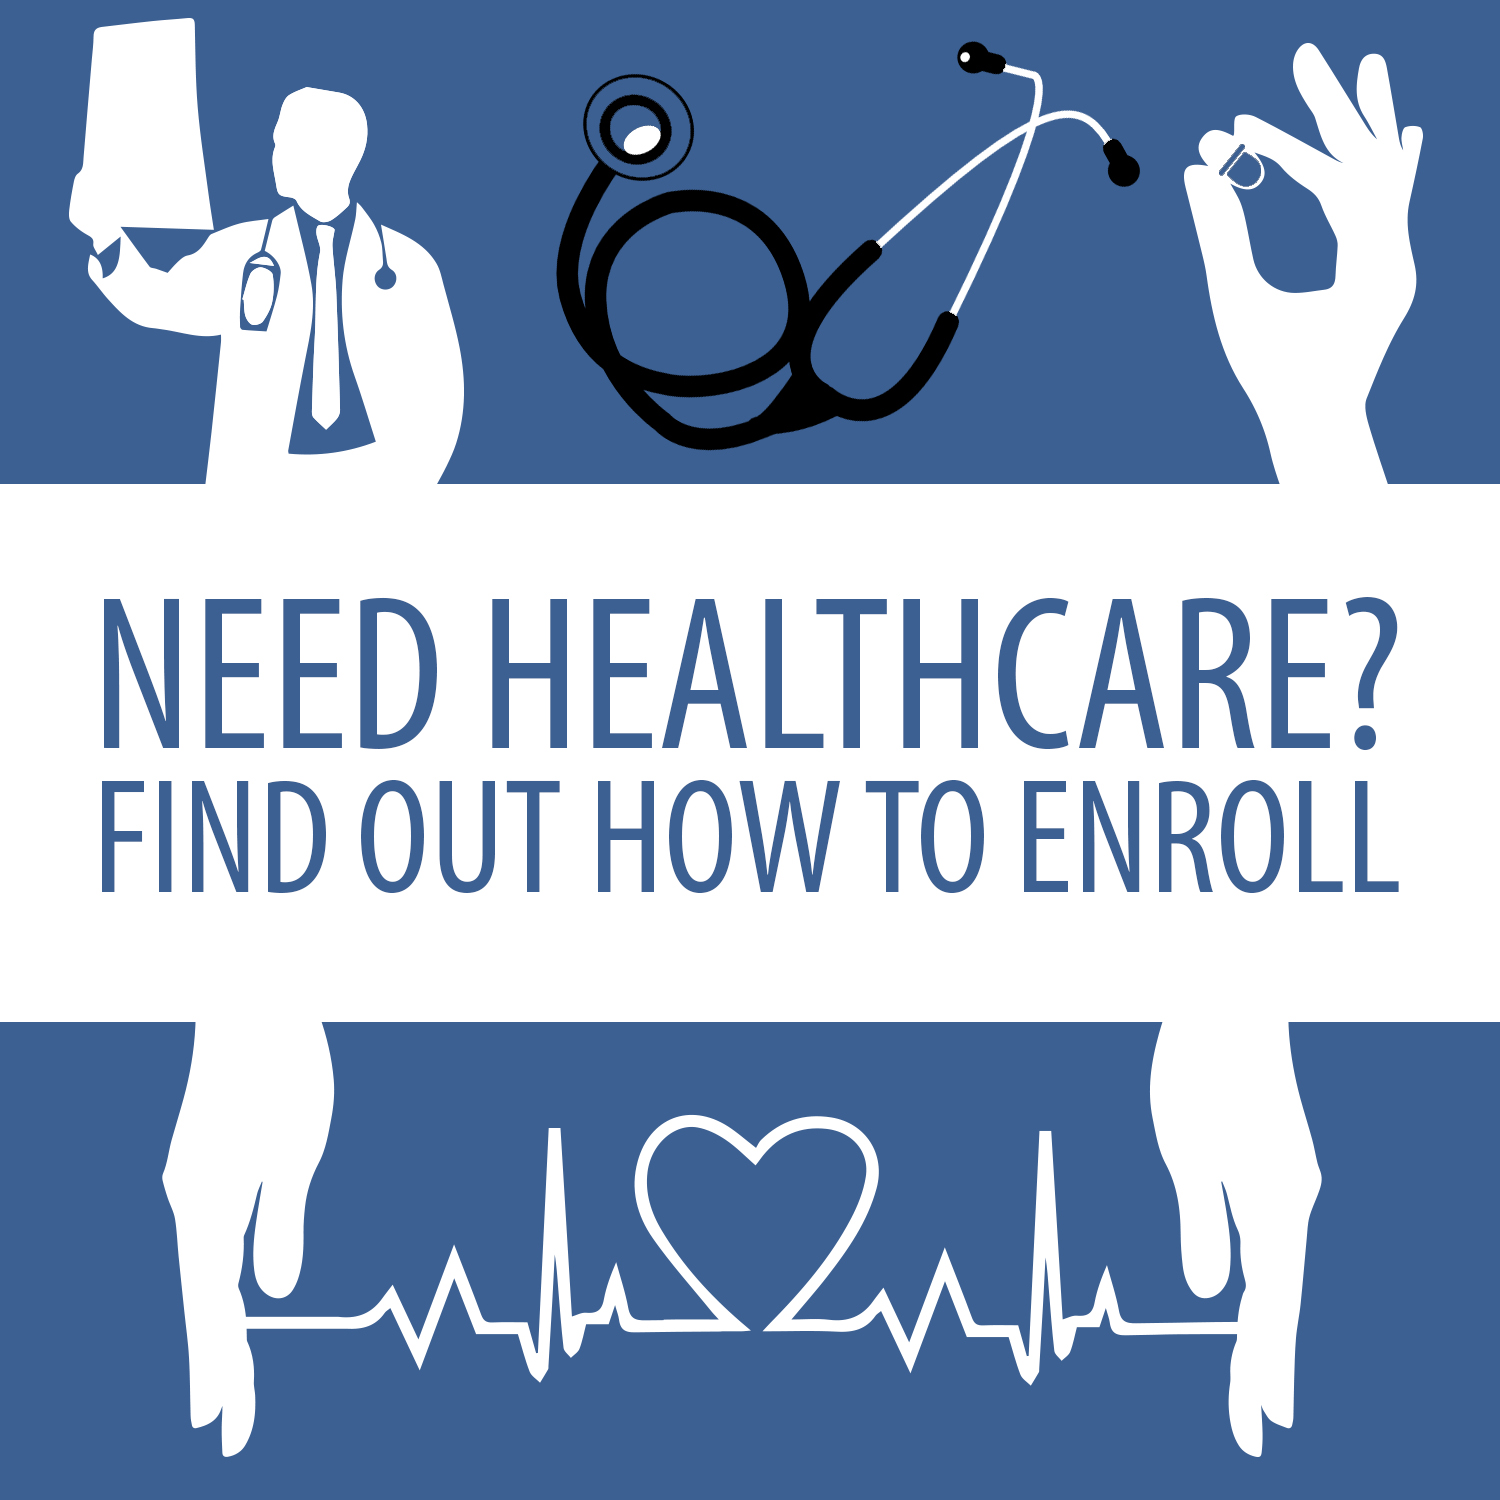 Health Care Resources